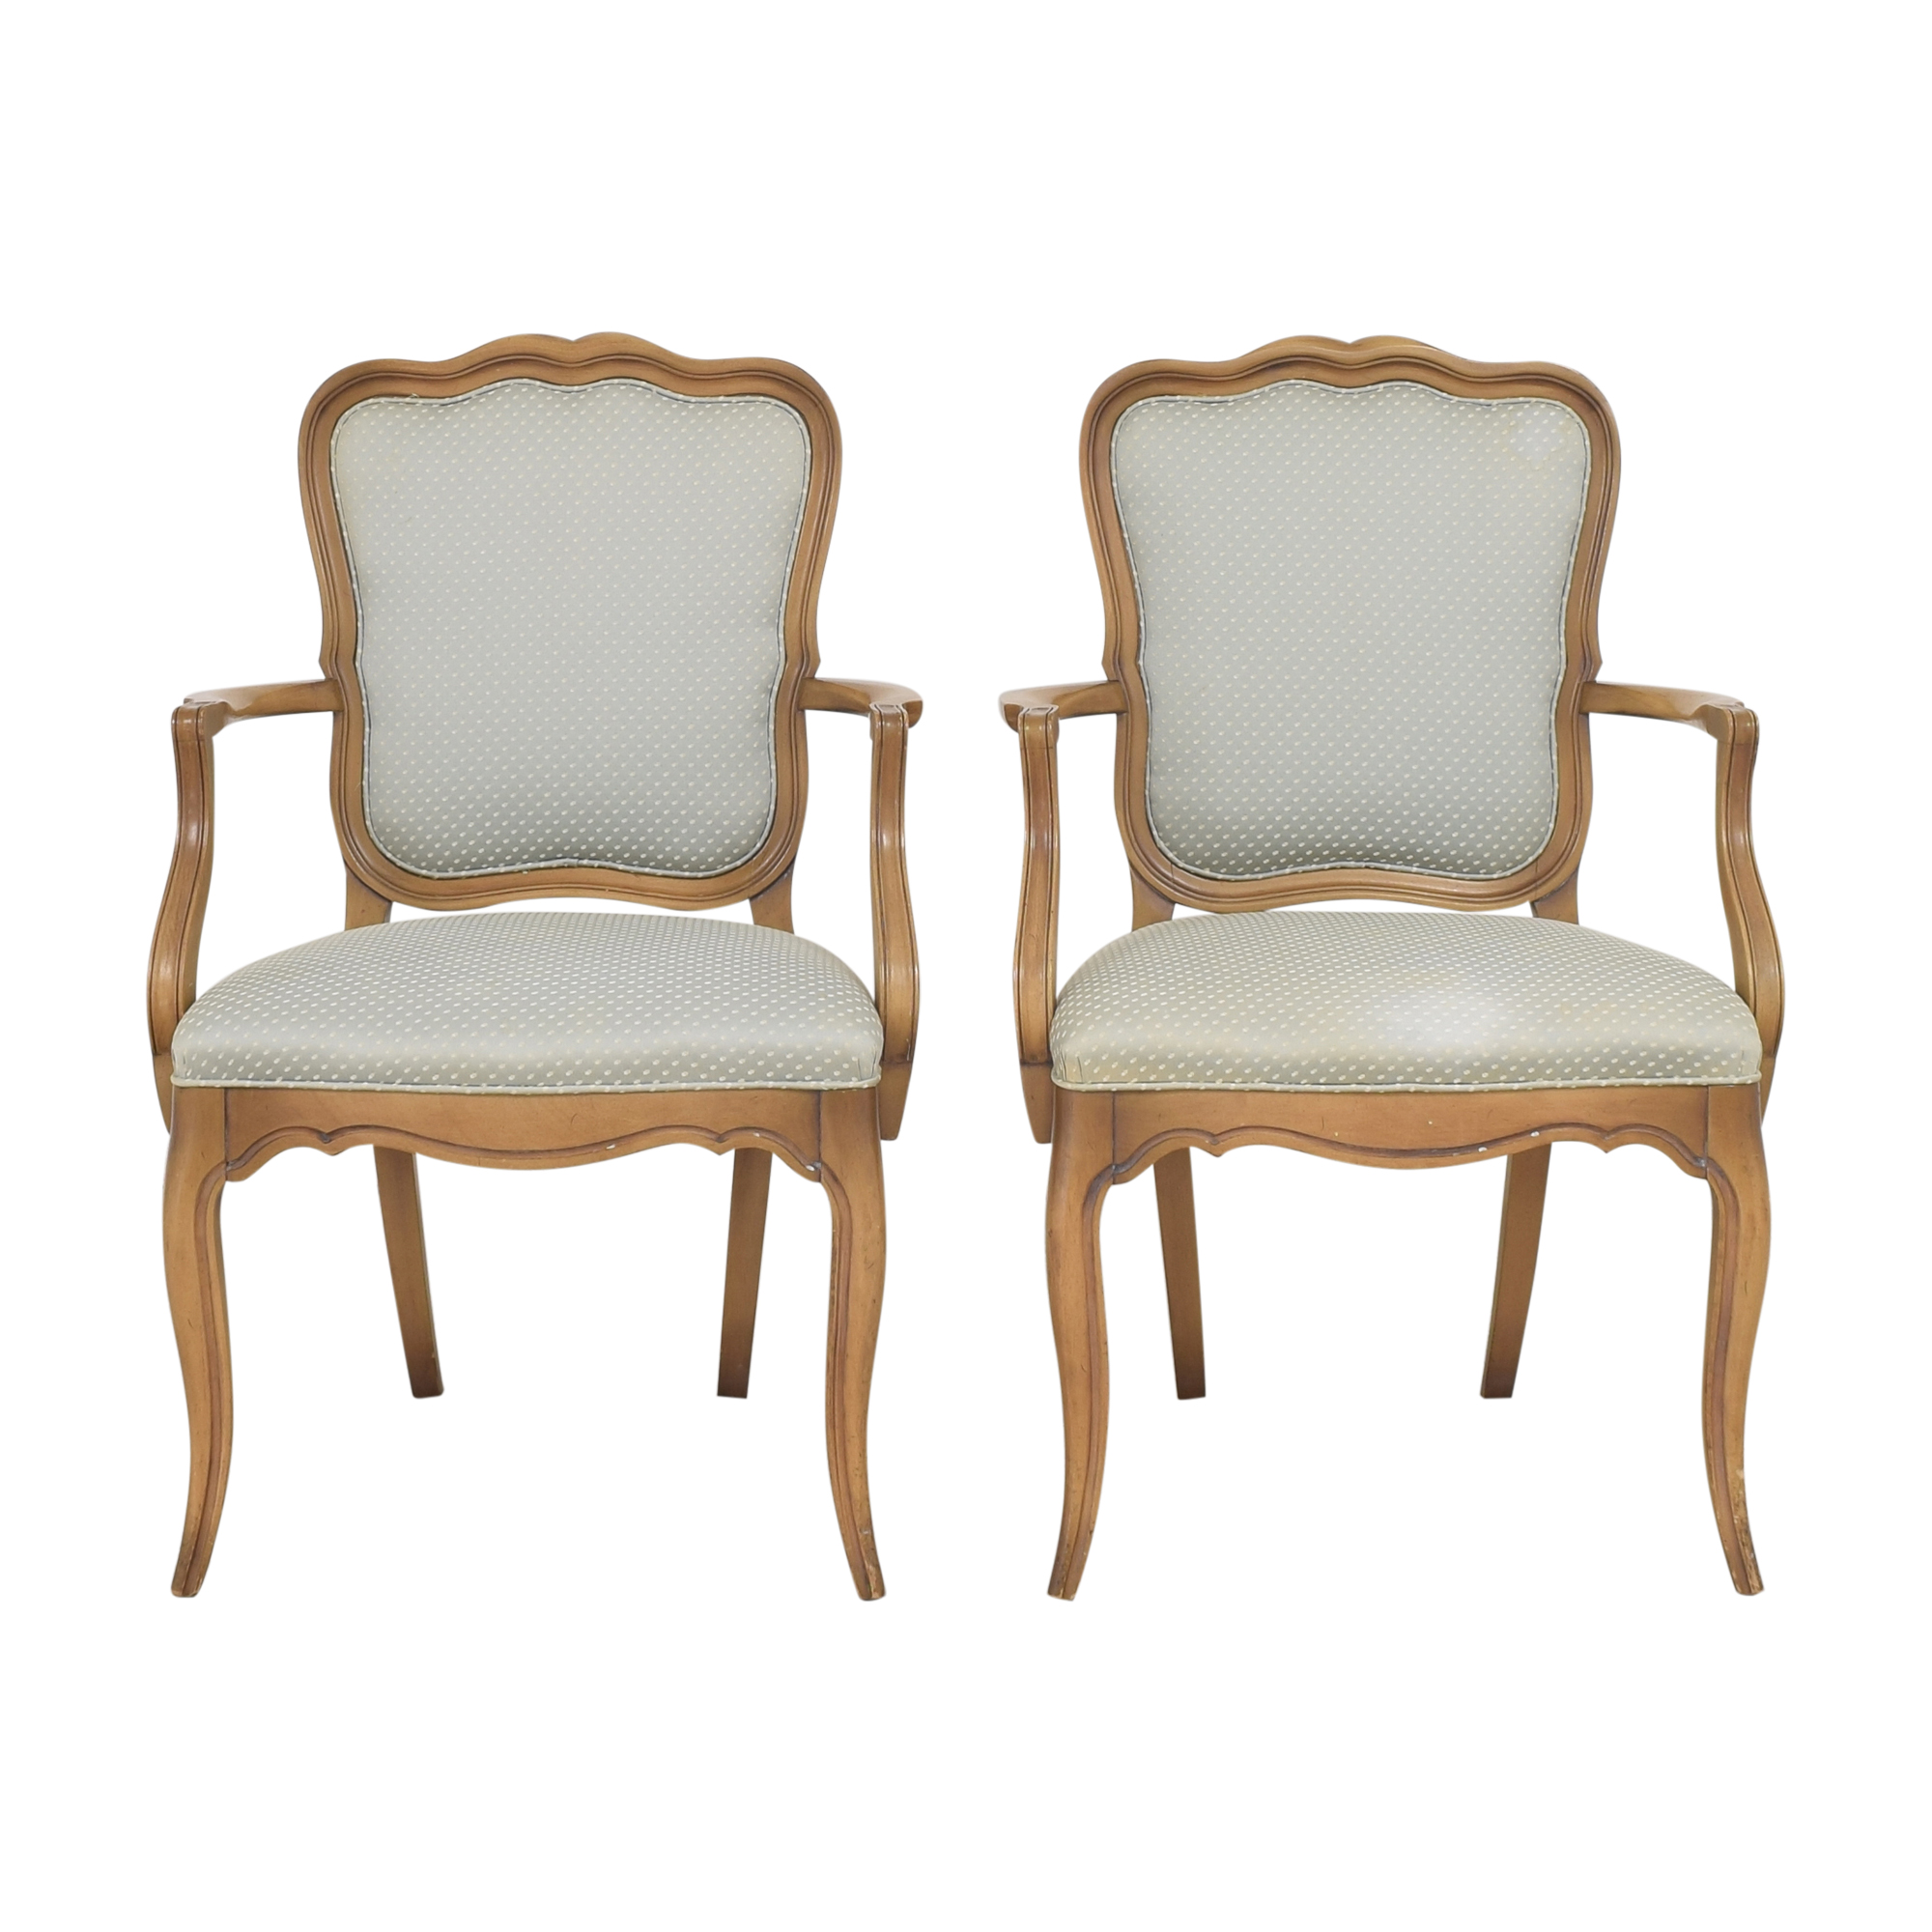 White Fine Furniture White Fine Furniture French Provincial-Style Dining Arm Chairs